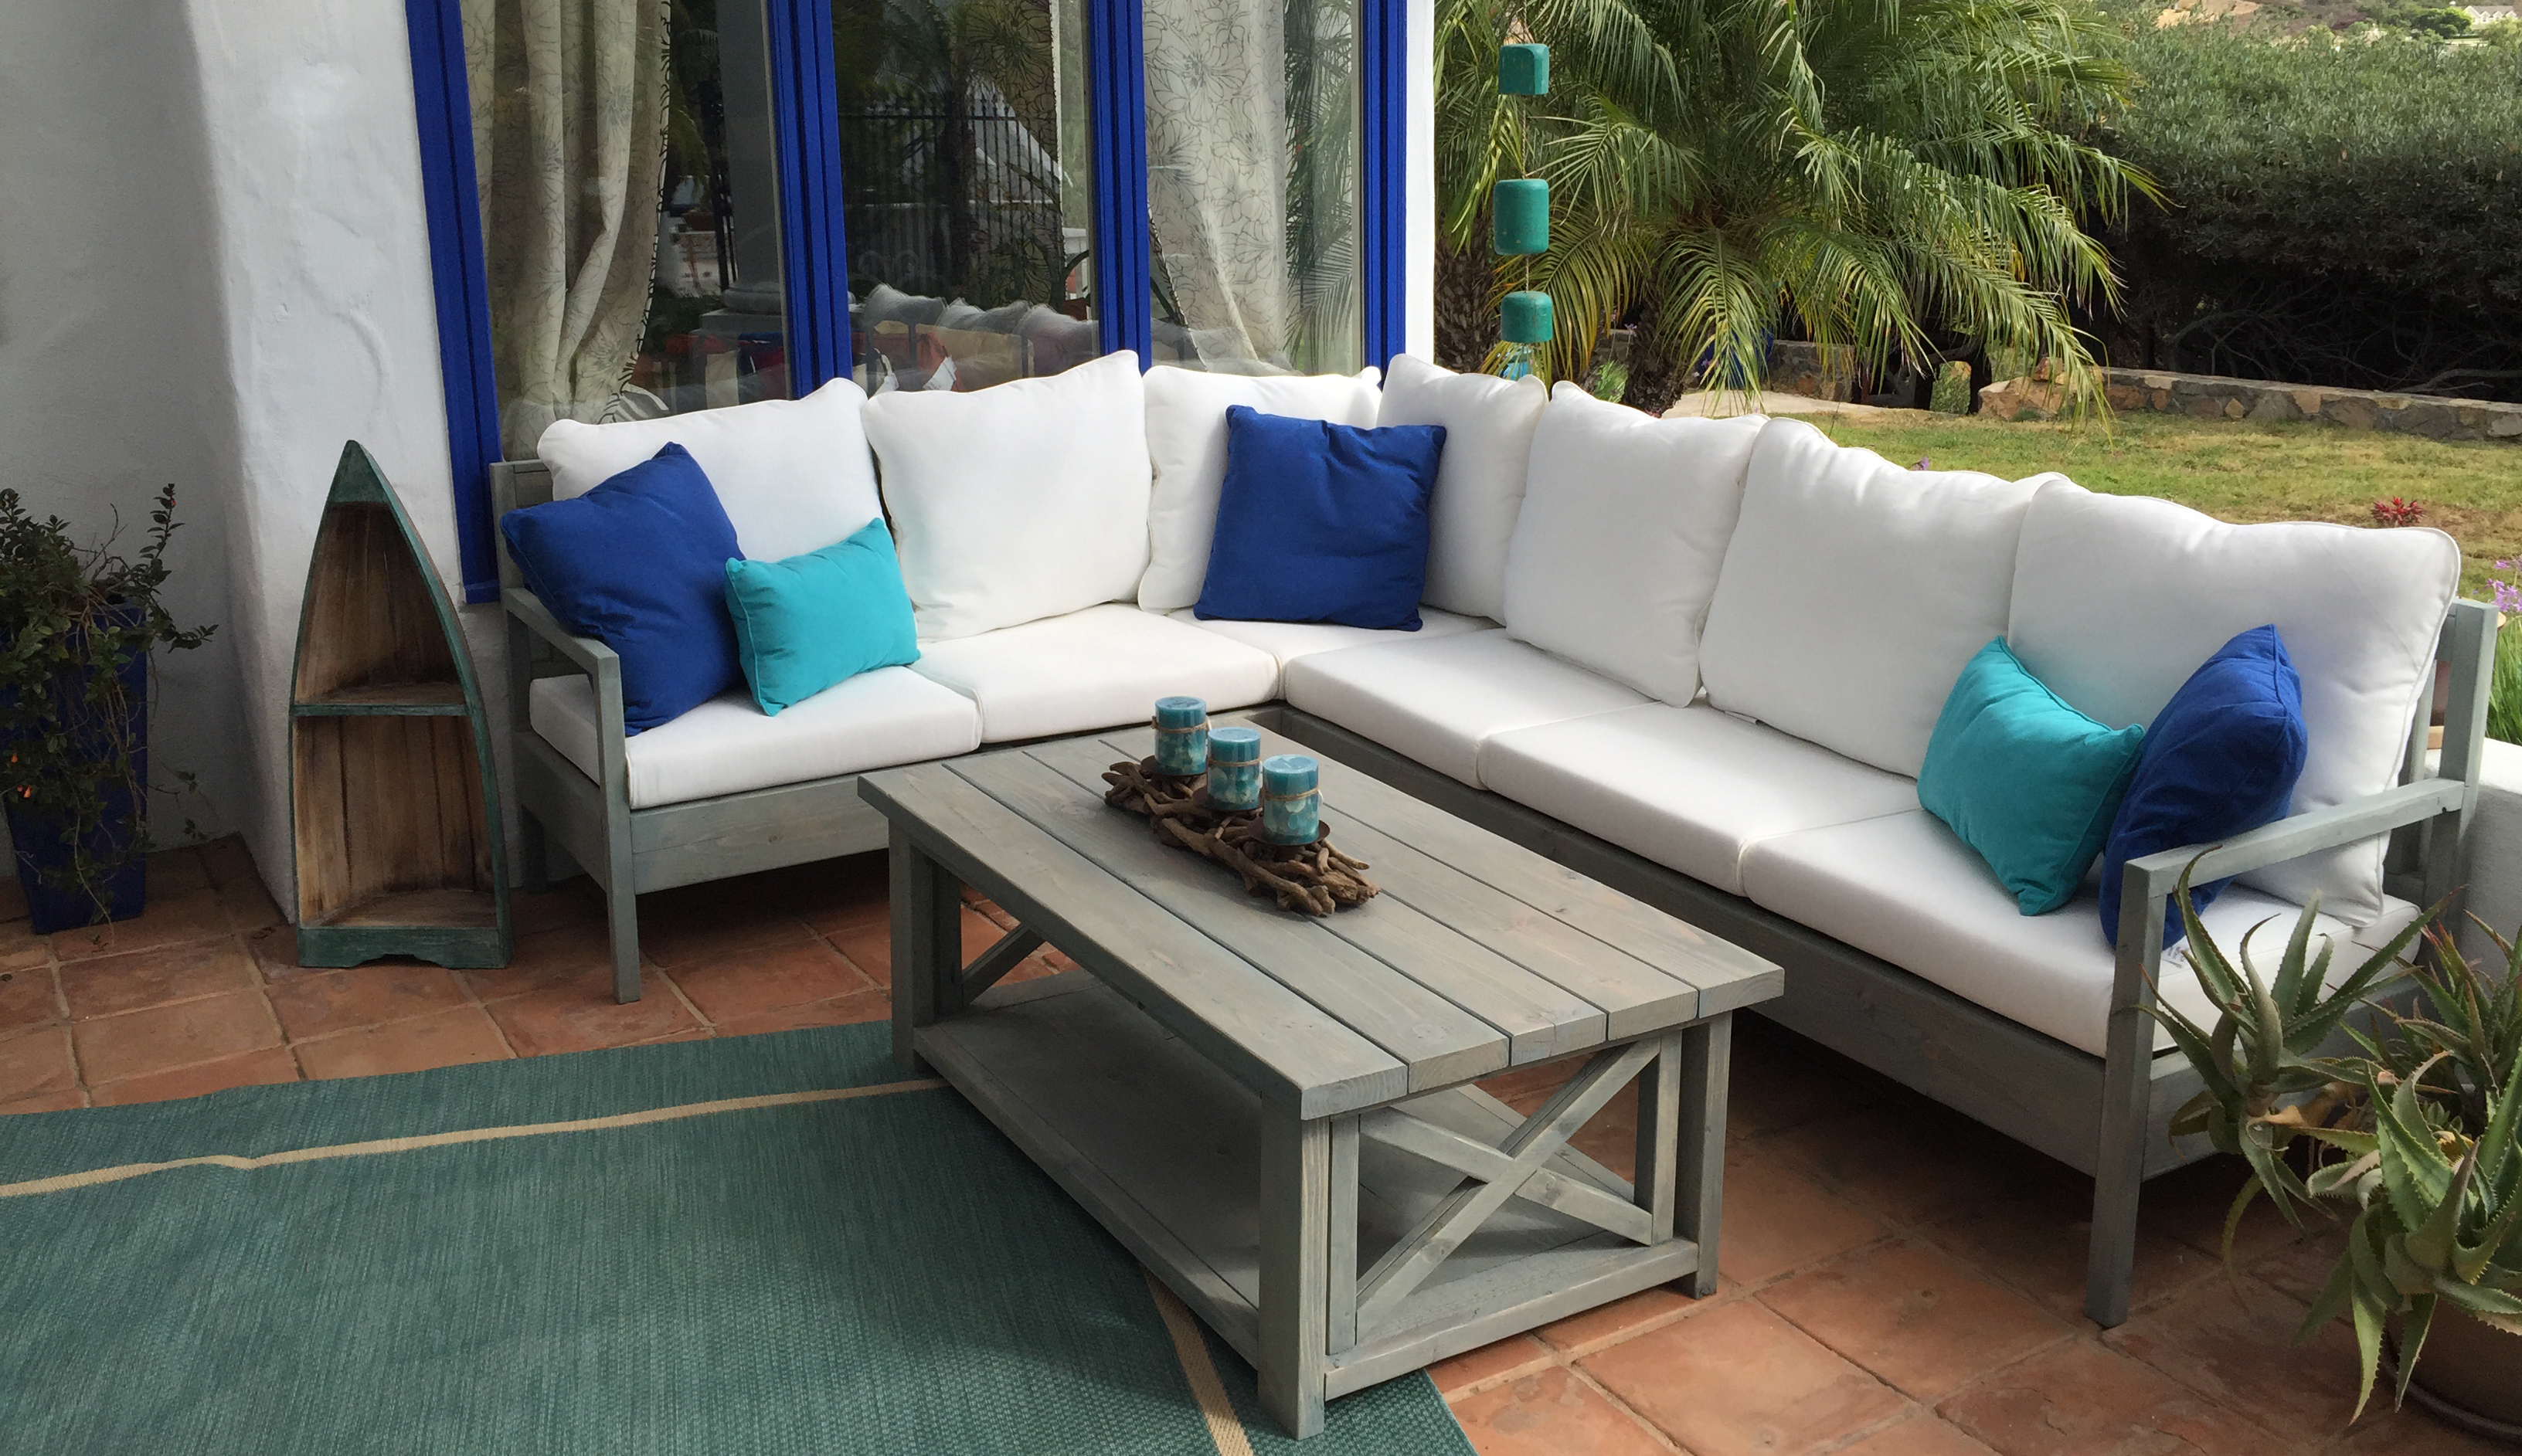 New X Design Coffee Table Outdoor Furniture San Diego - Outdoor furniture san diego